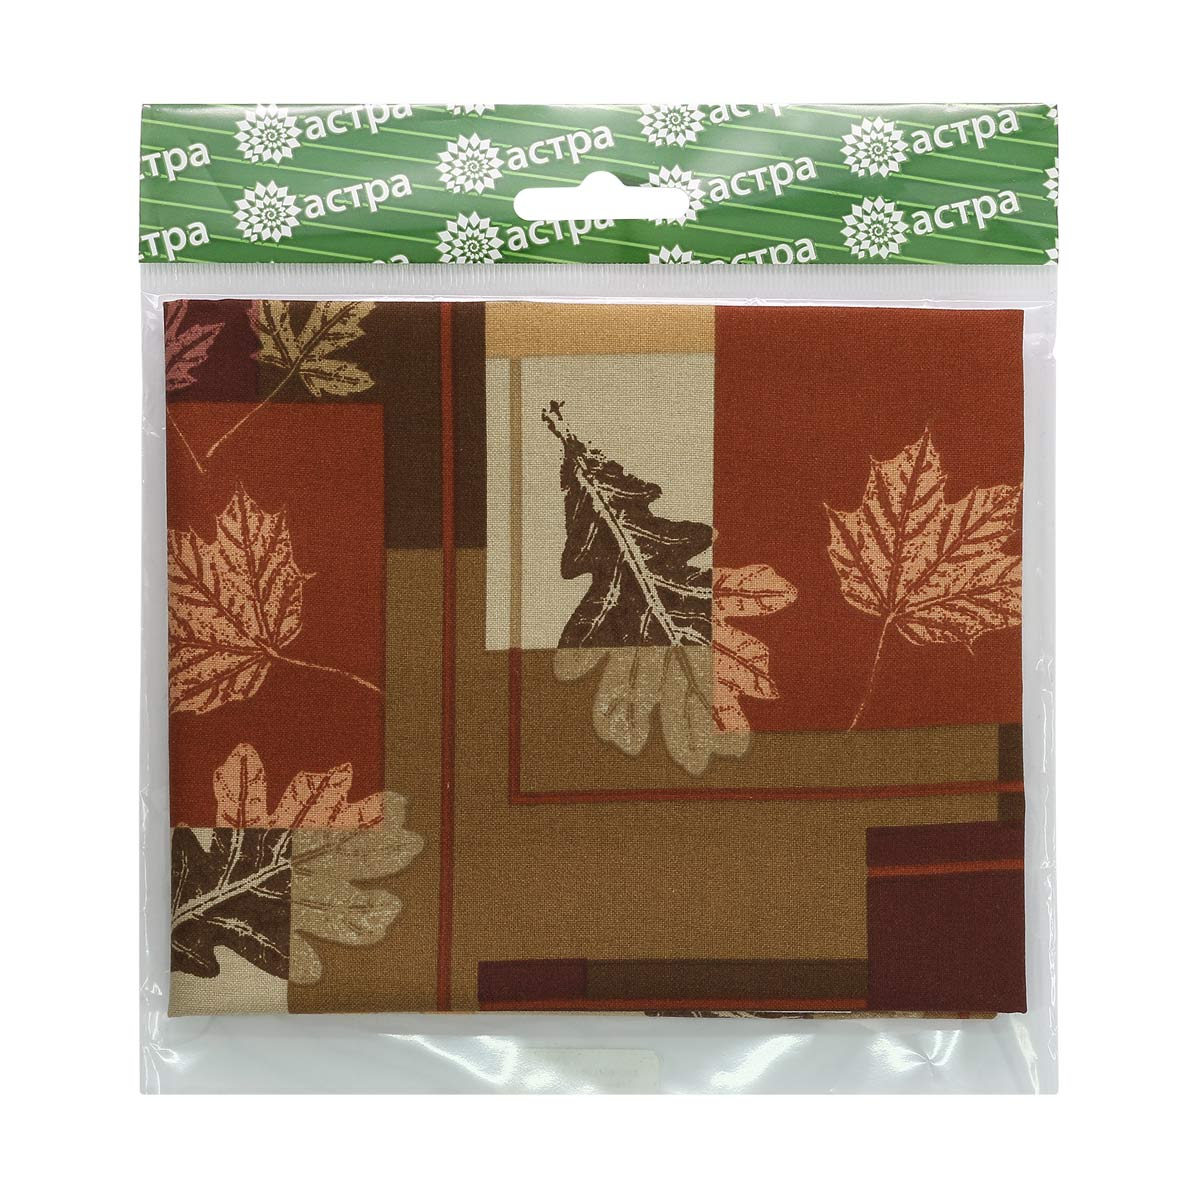 3968-47735-Square-Leaves CLASSIC СOTTONS Ткань 100% хл, 50*55см Астра